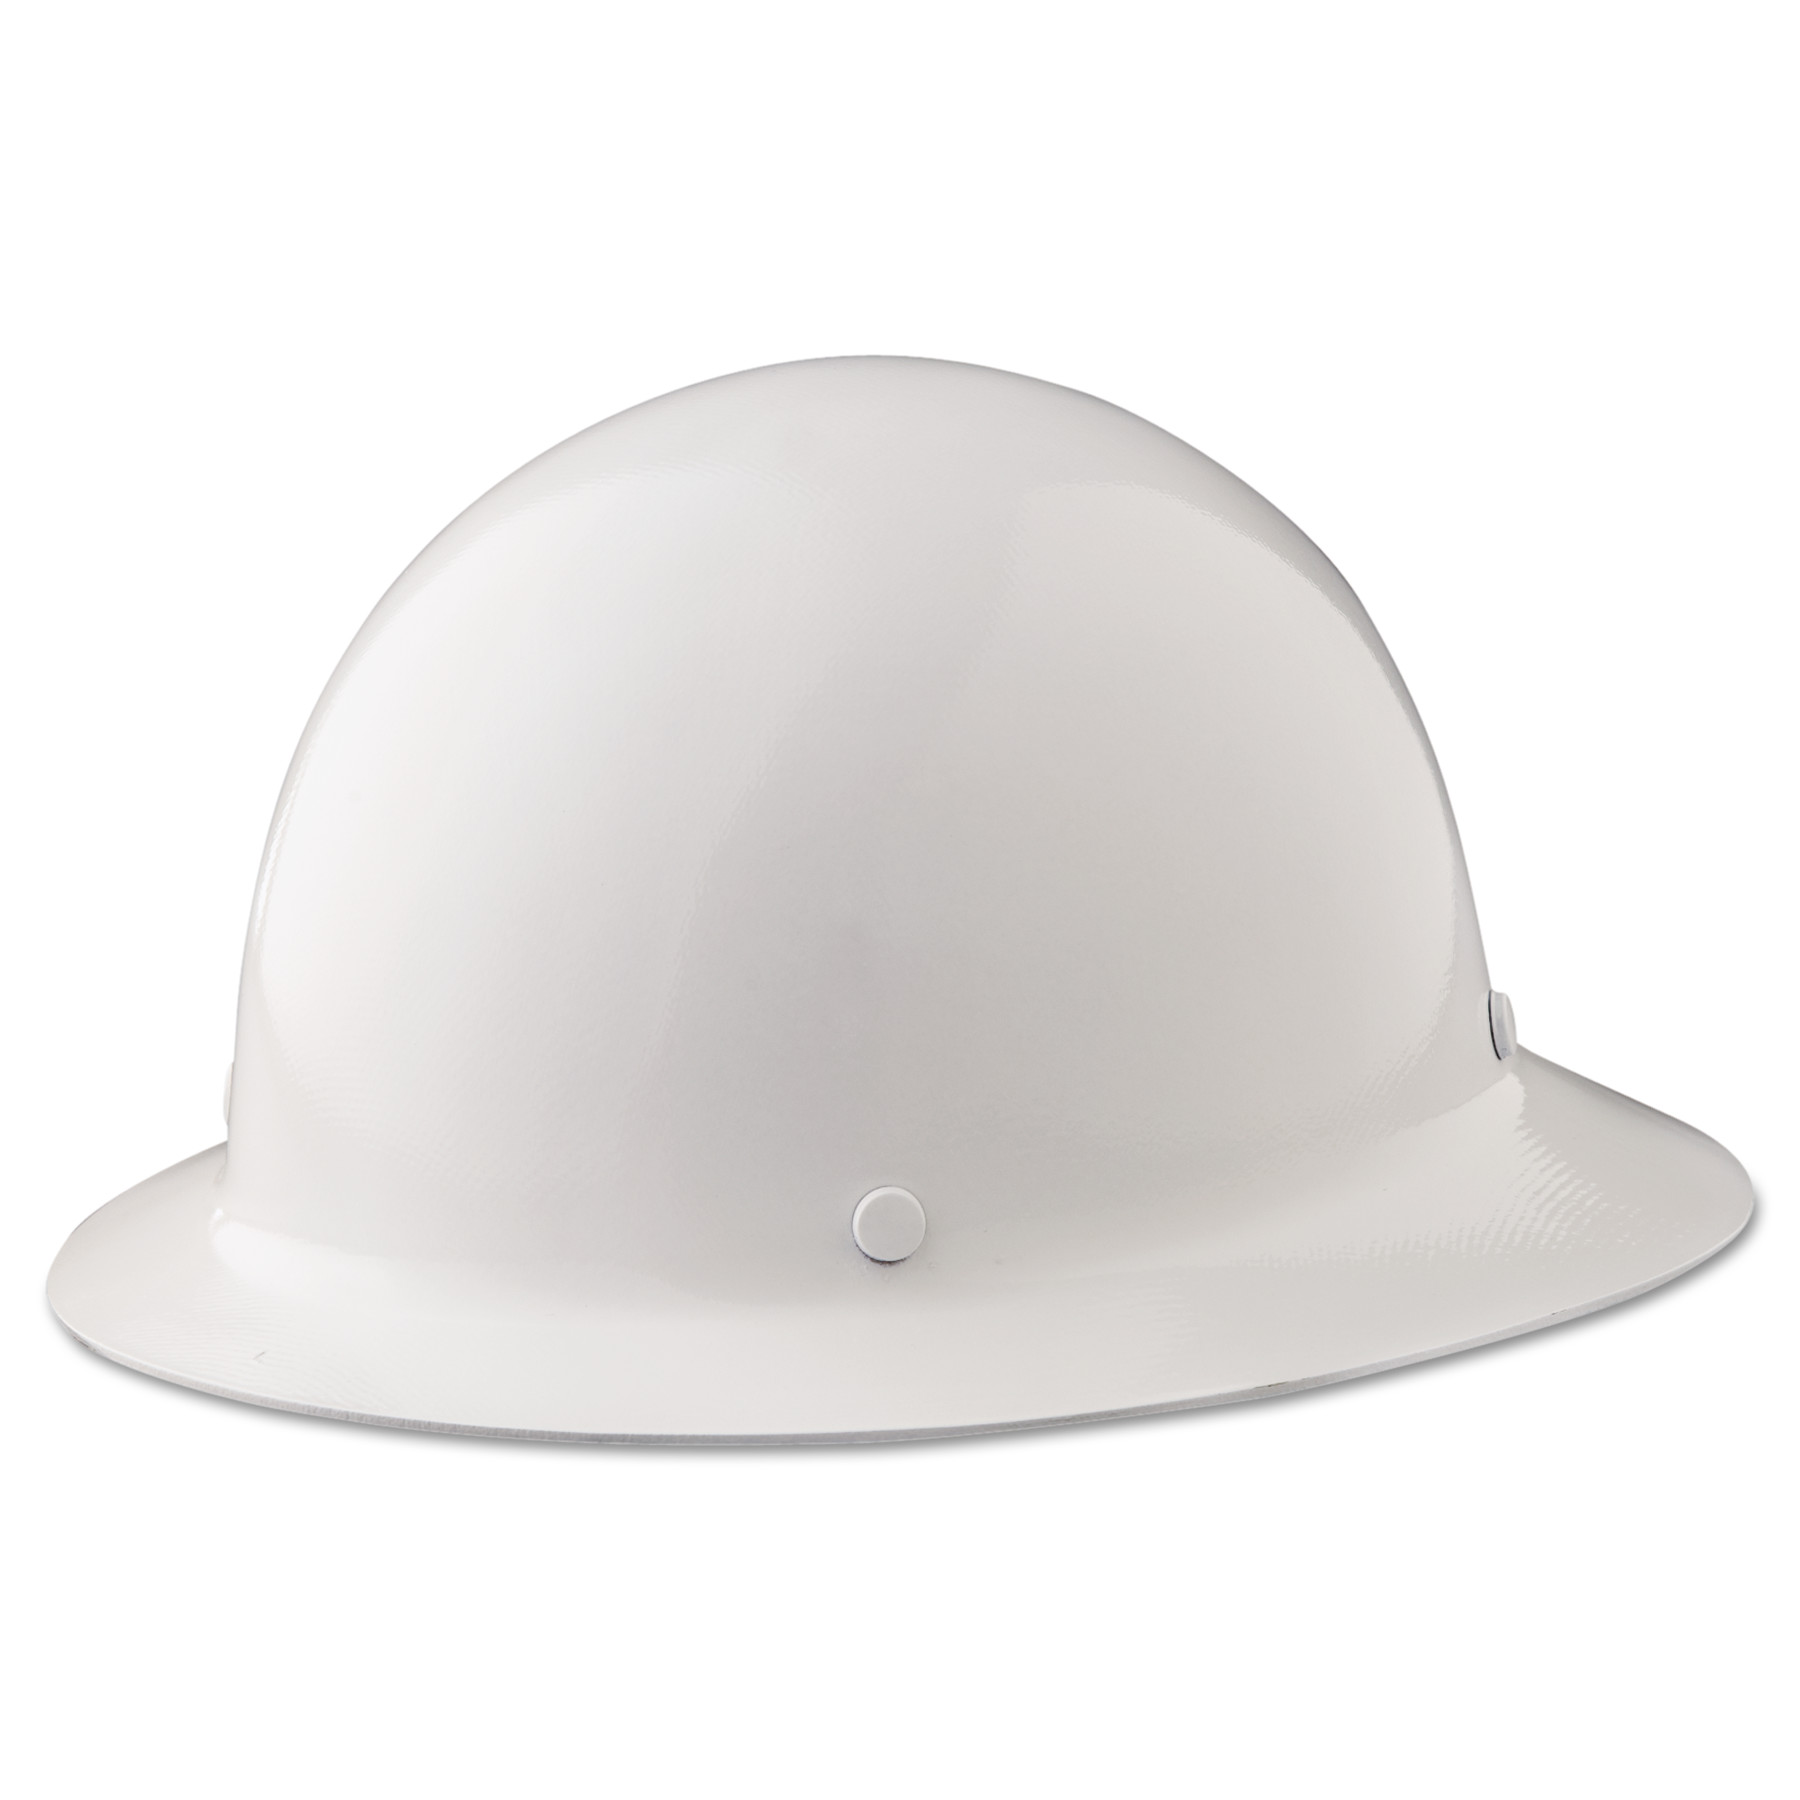 MSA Skullgard Protective Hard Hats, Ratchet Suspension, Size 6 1 2 8, White by SAFETY WORKS